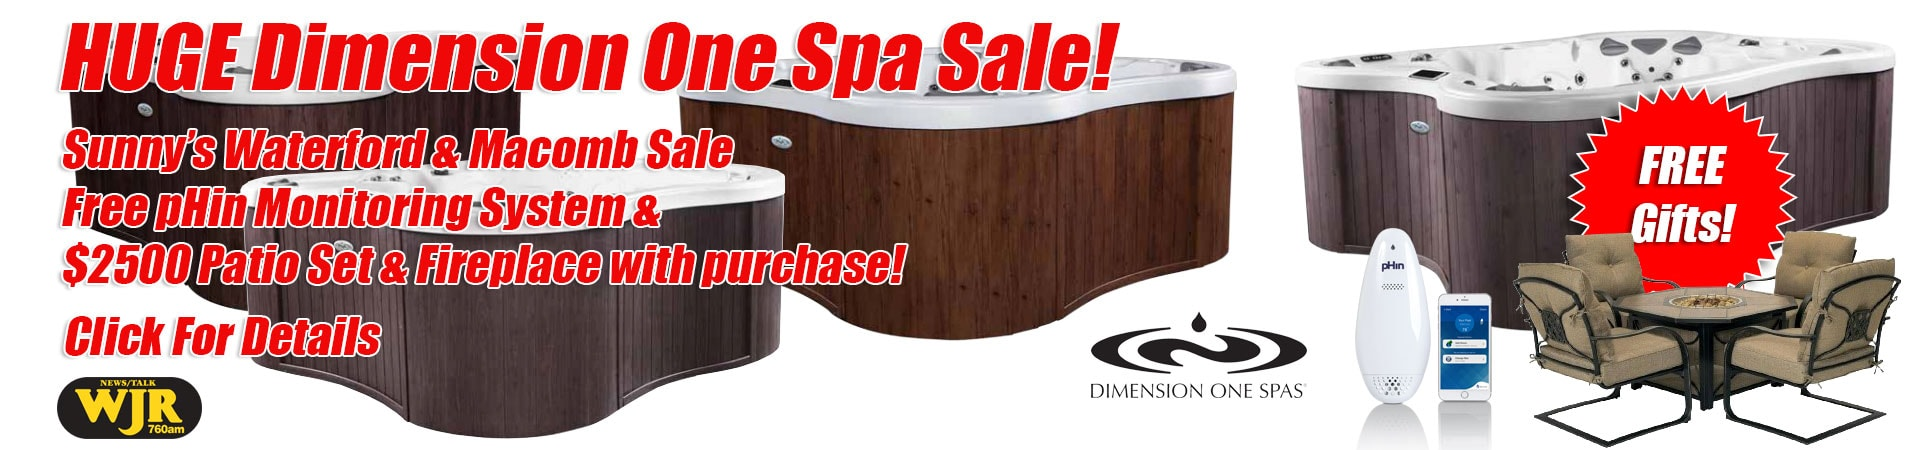 Dimension One Huge Sale!